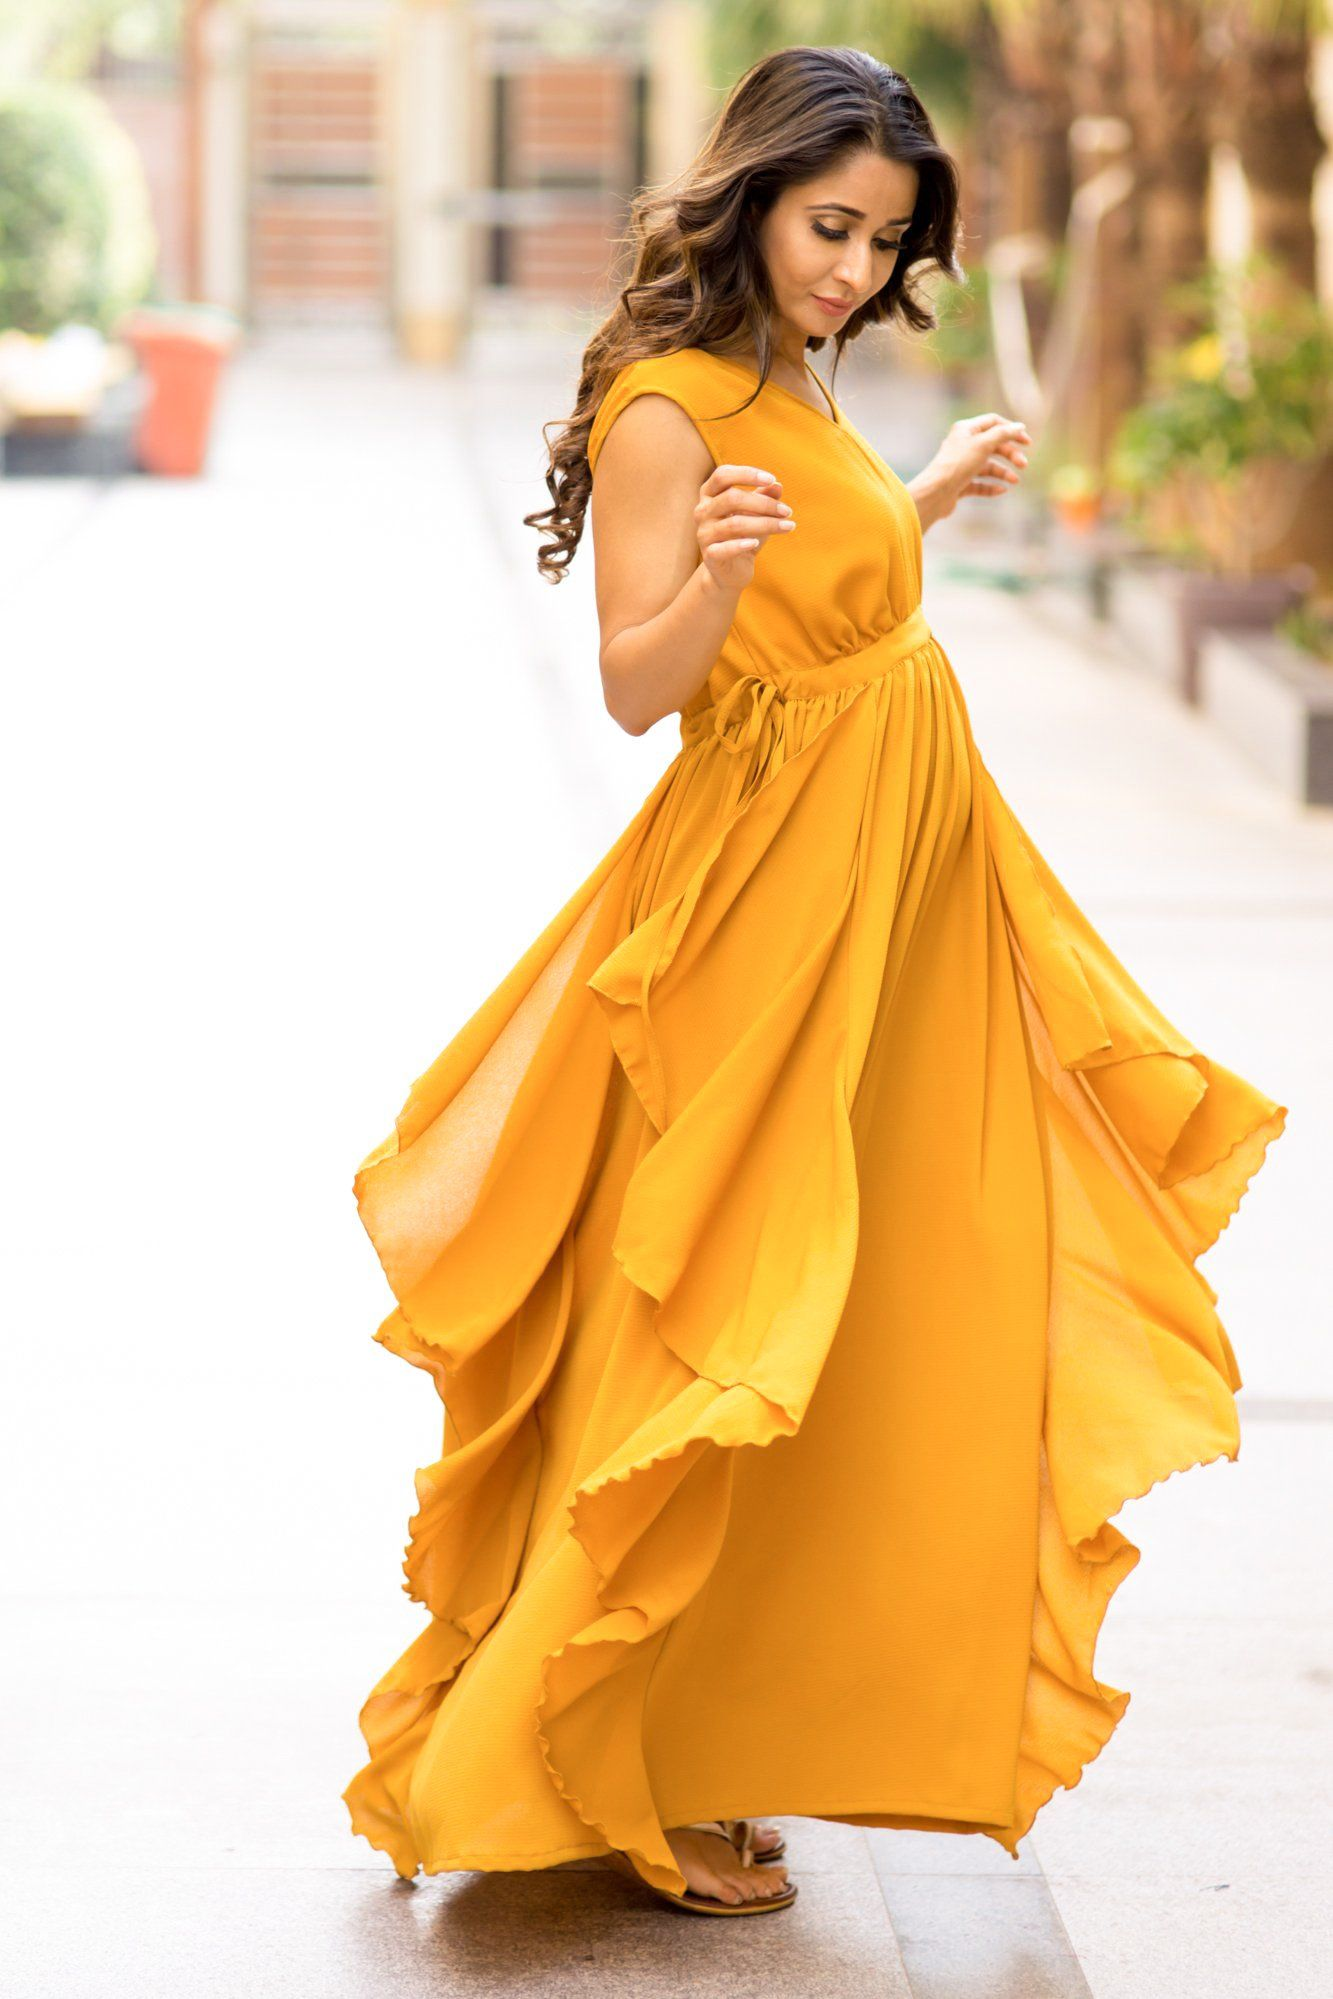 Luxe Mustard Yellow Moss Maternity Flow Dress